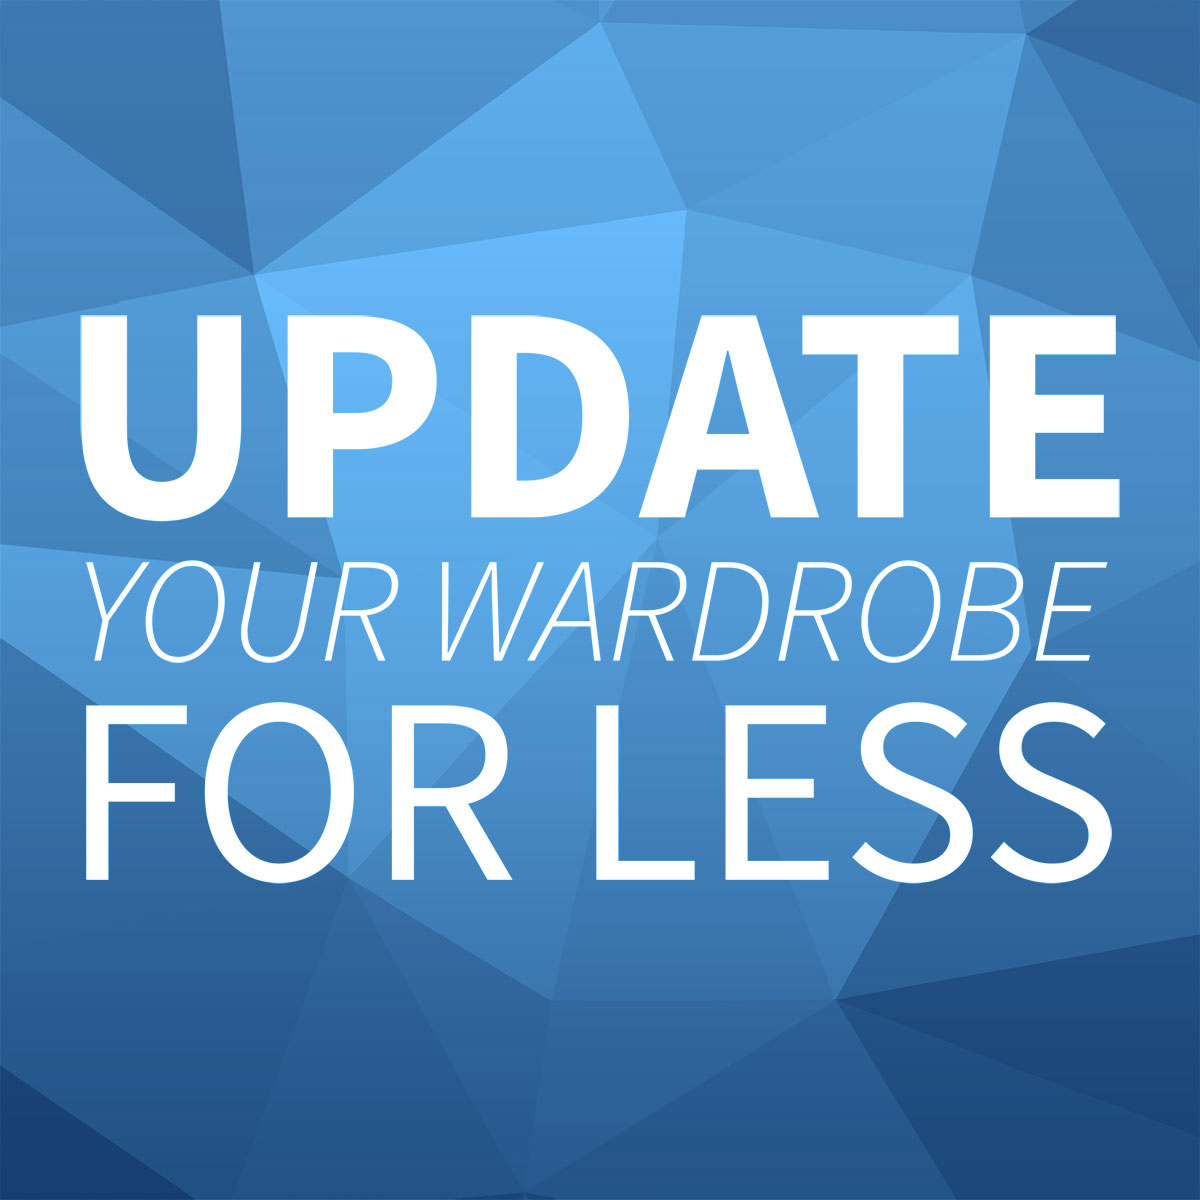 UPDATE YOUR WARDROBE FOR LESS